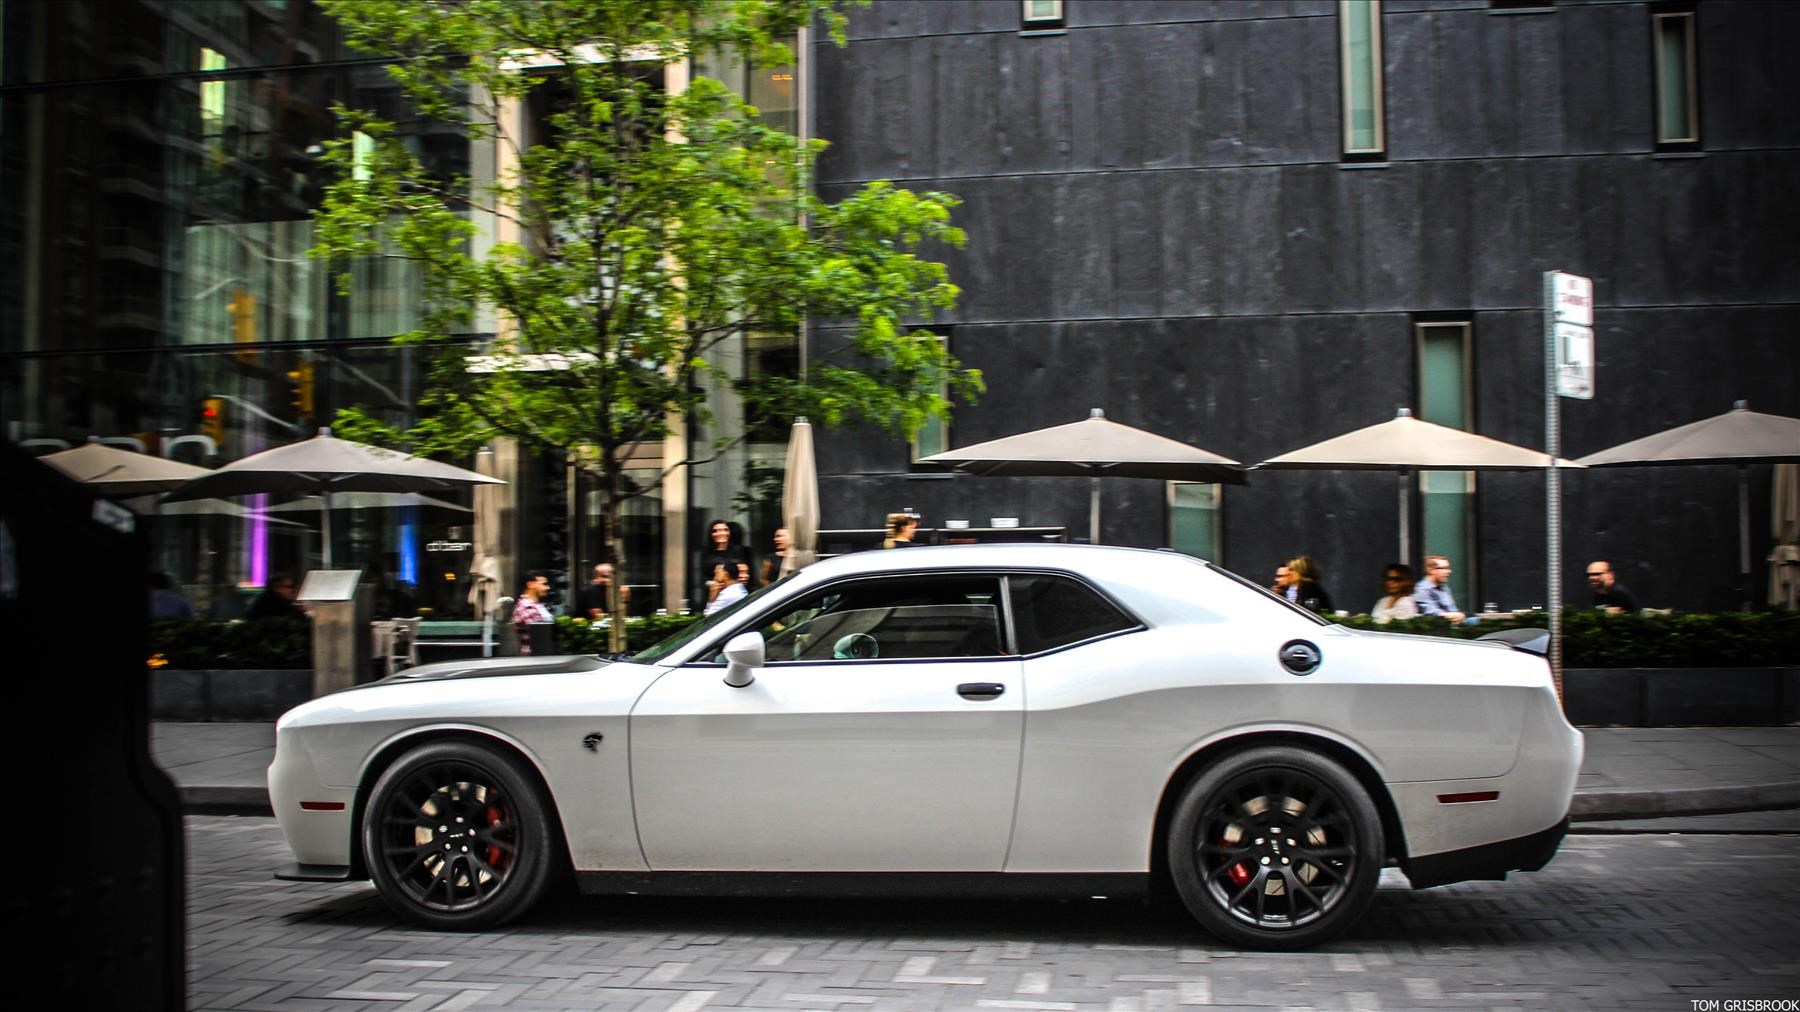 The 707 hp Dodge Challenger Hellcat